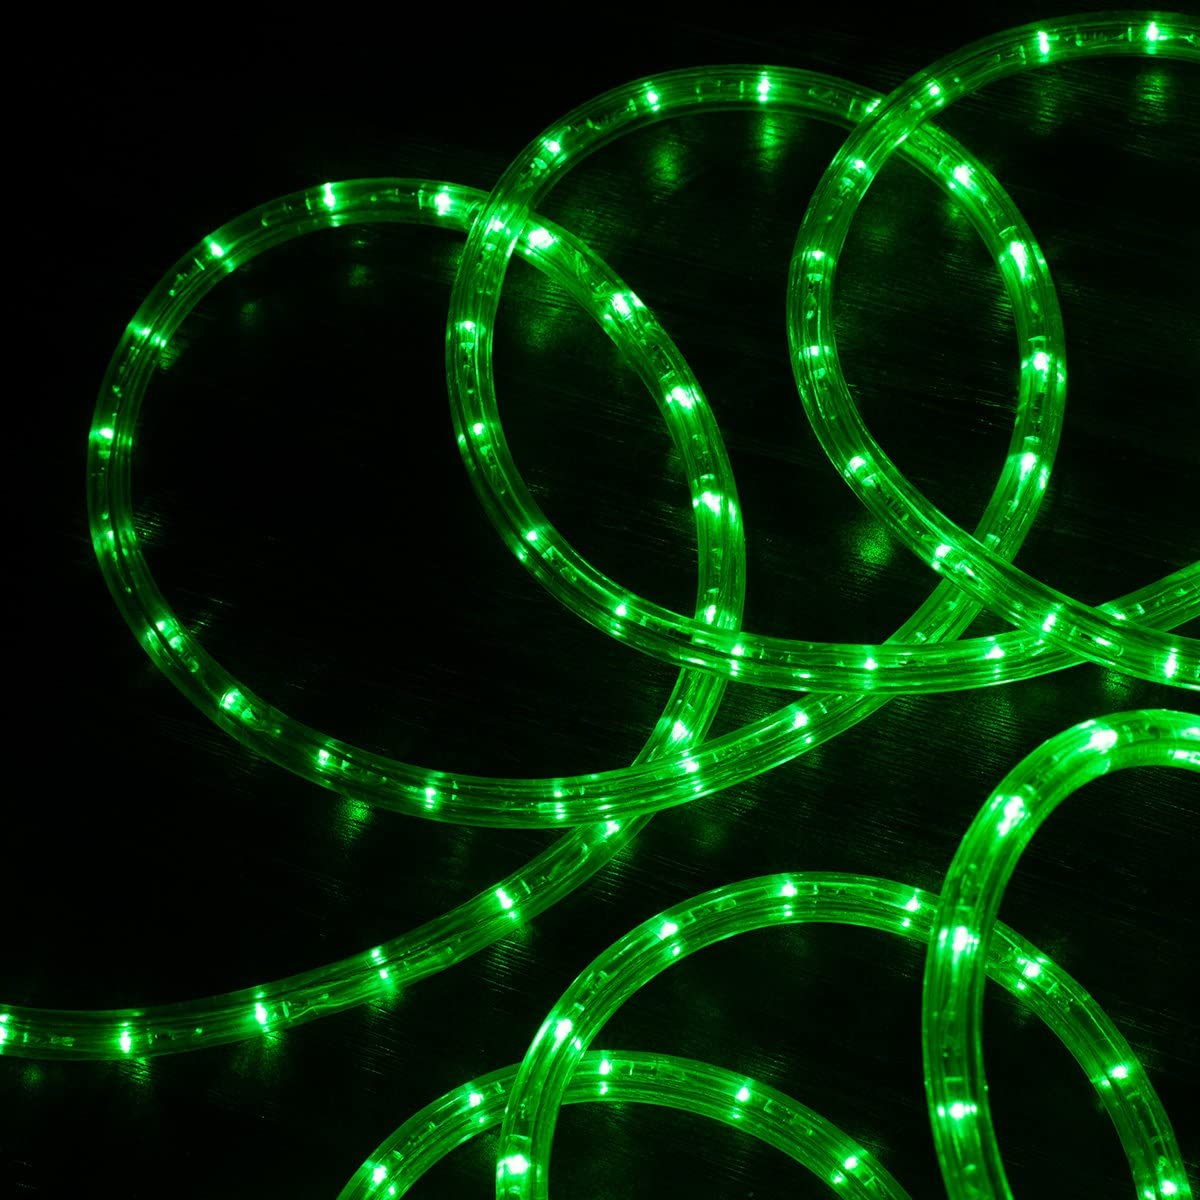 """West Ivory 3/8"""" (150' feet) Green LED Rope Lights 2 Wire Accent Holiday Christmas Party Decoration Extendable Lighting (10', 25', 60', 150' ft Option)